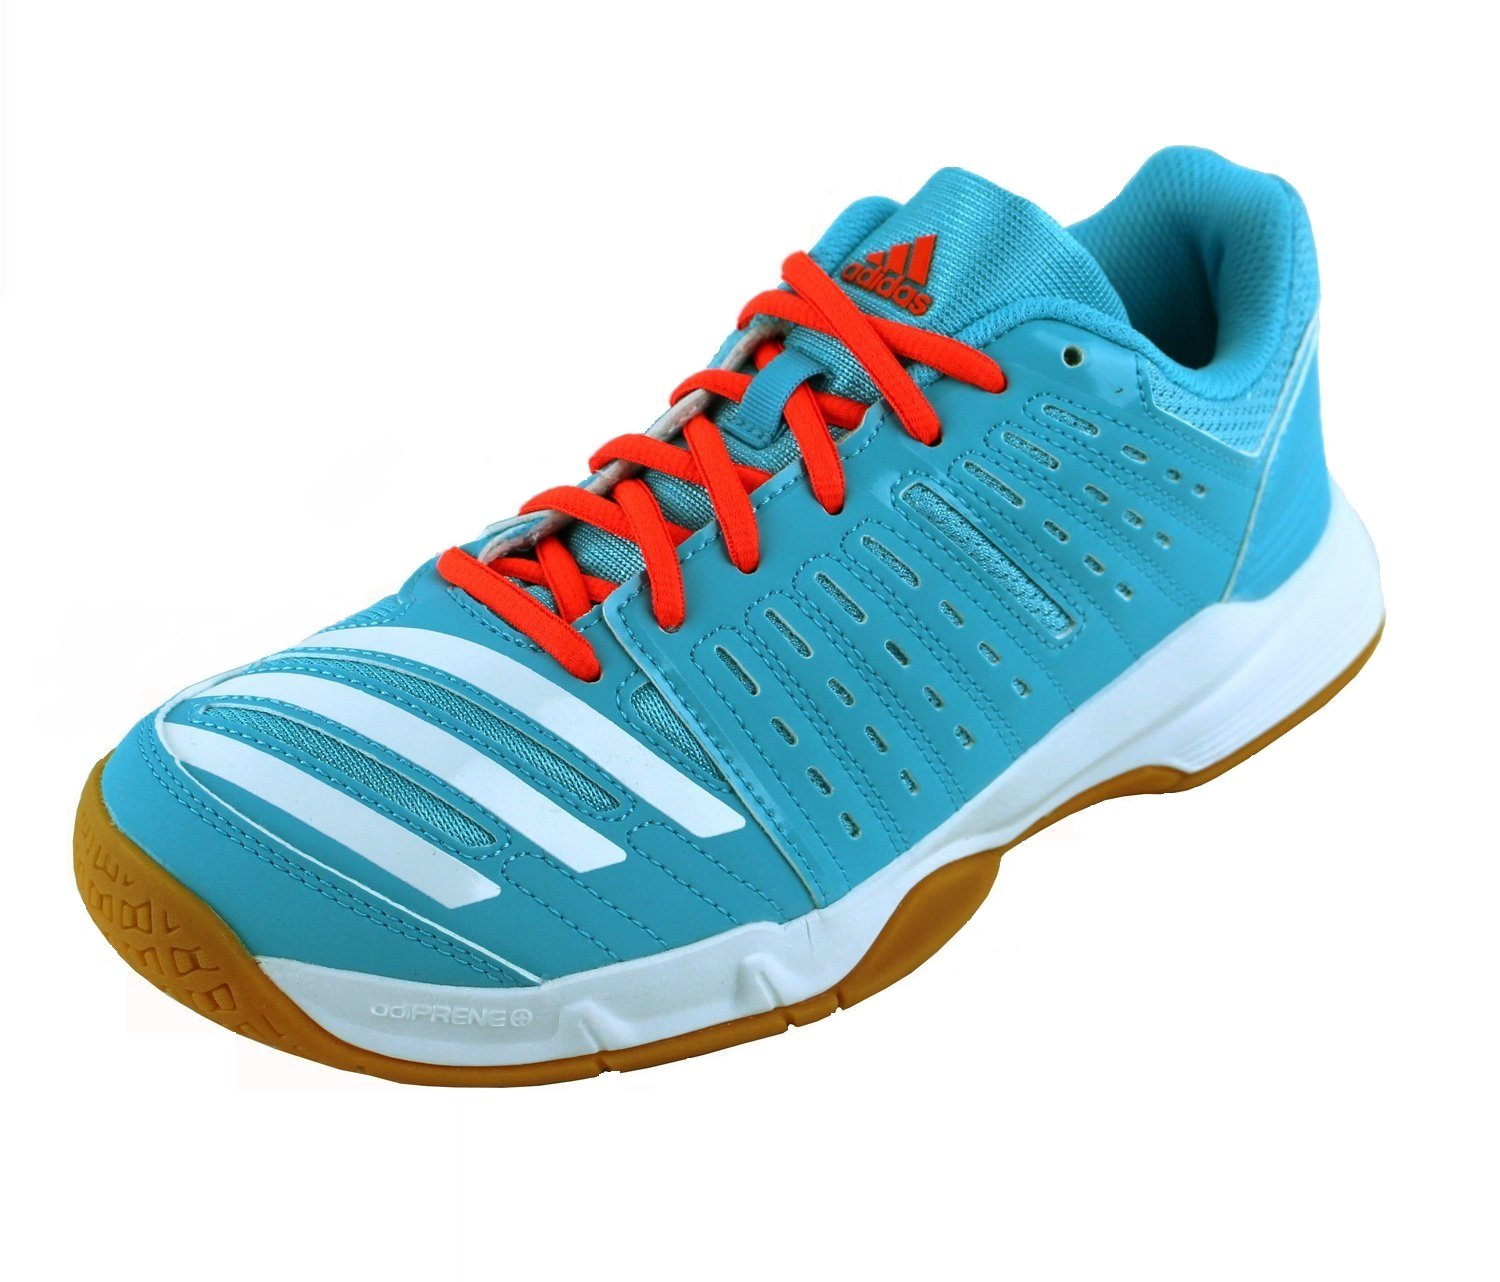 Adidas Essence Women's Indoor Court Shoes Bright Cyan Blue (7)